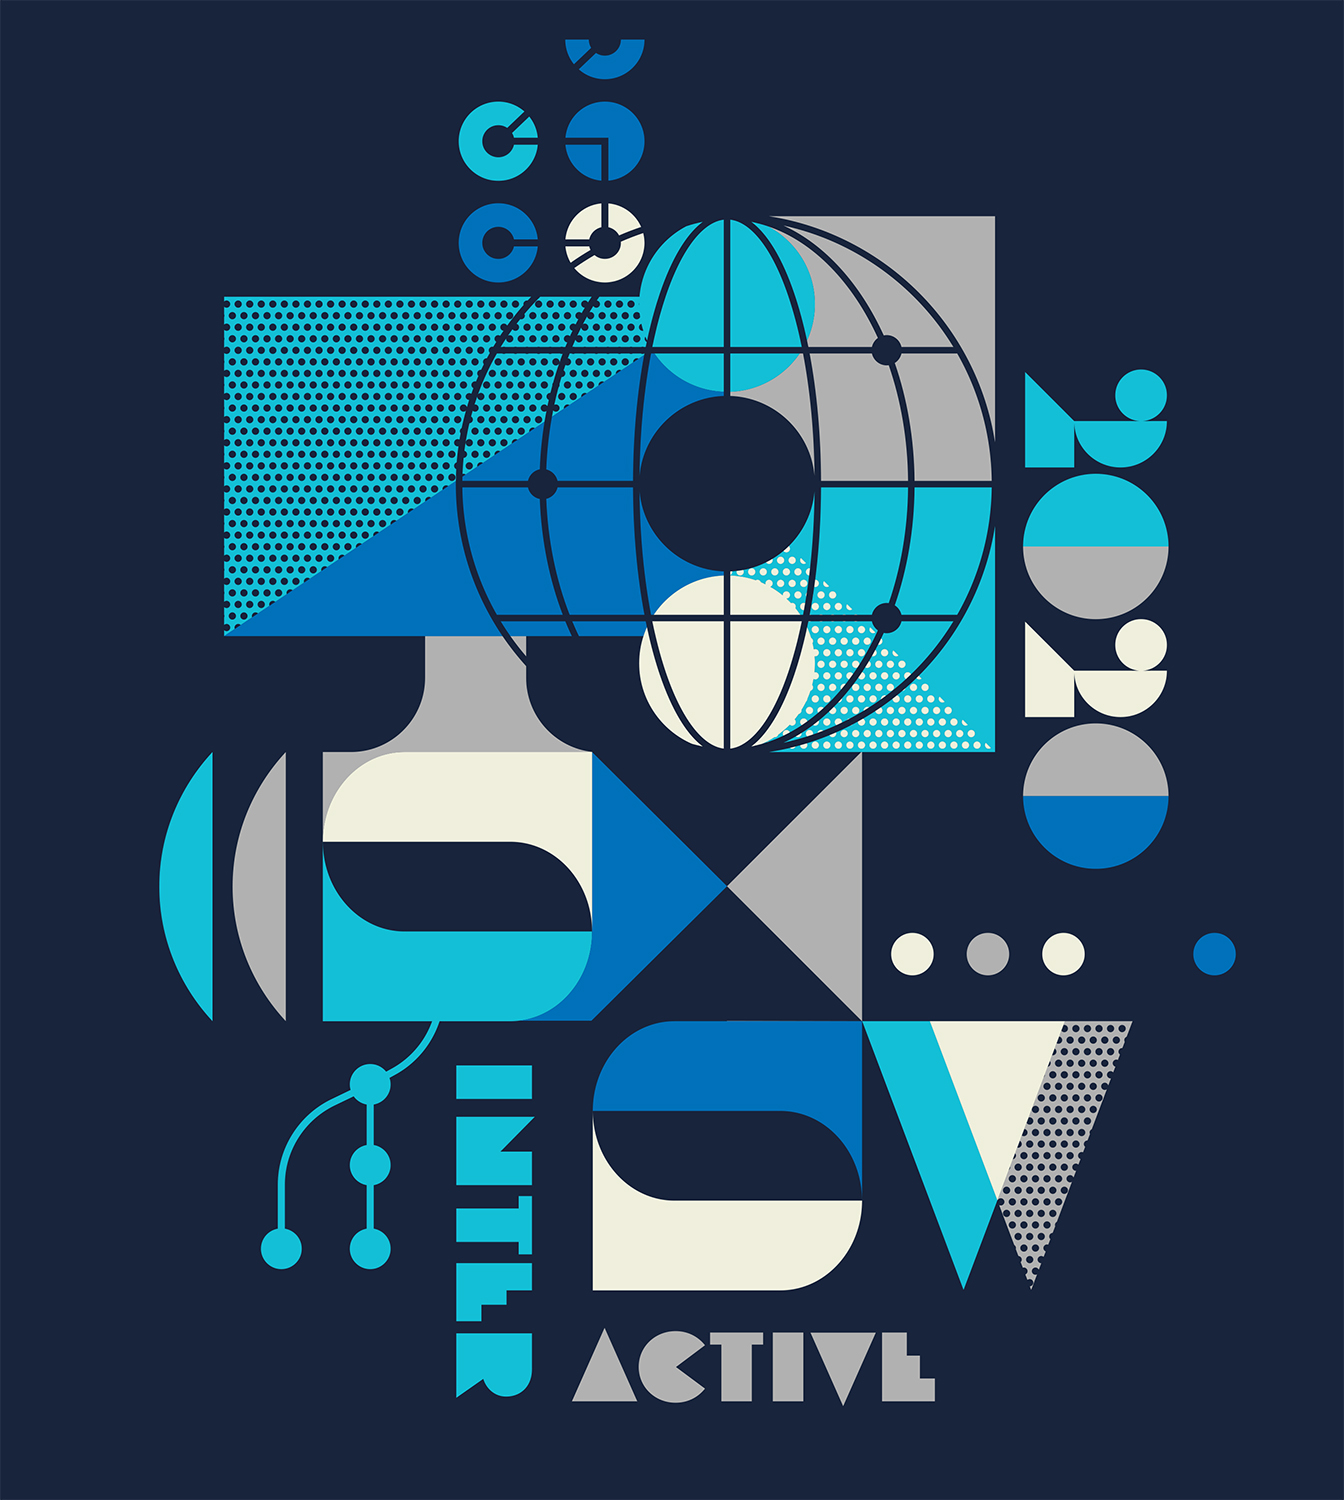 SXSW Interactive t-shirt artwork for 2020 by Ty Mattson